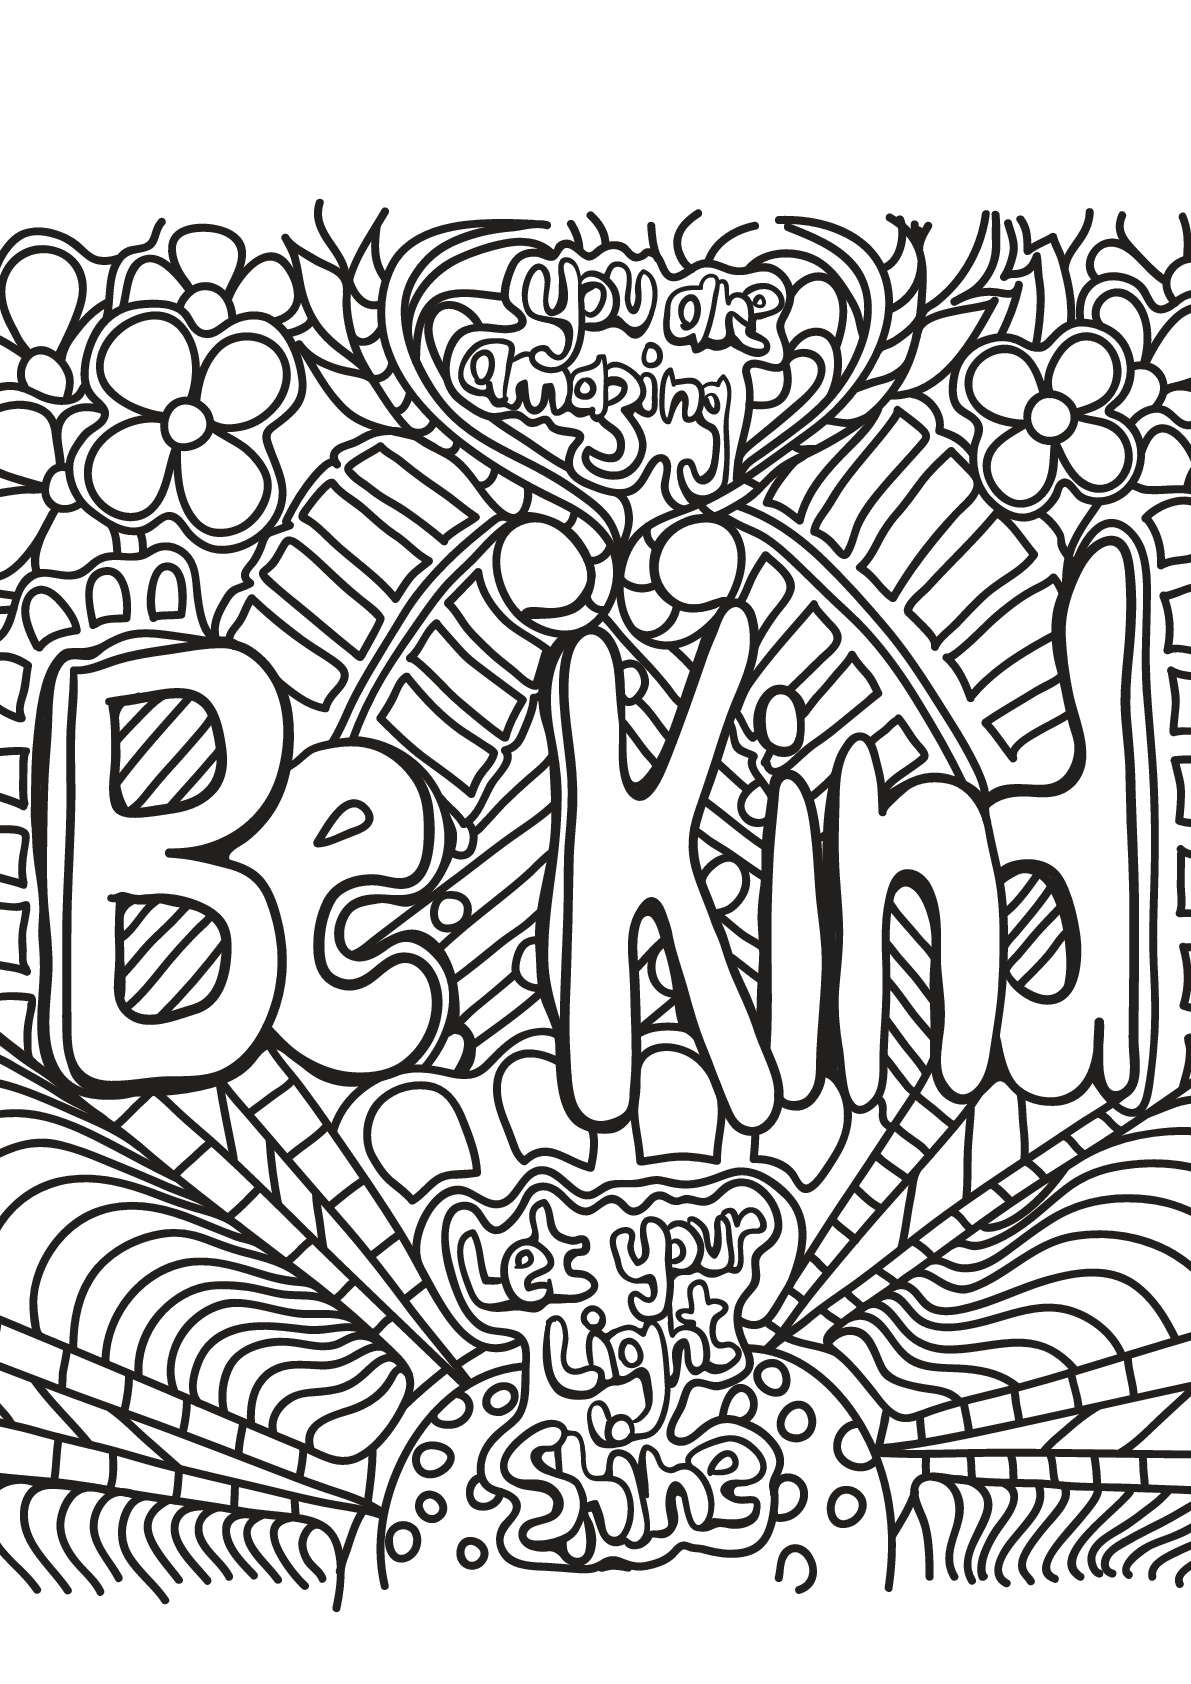 kindness coloring pages best coloring pages for kids kindness coloring pages best coloring